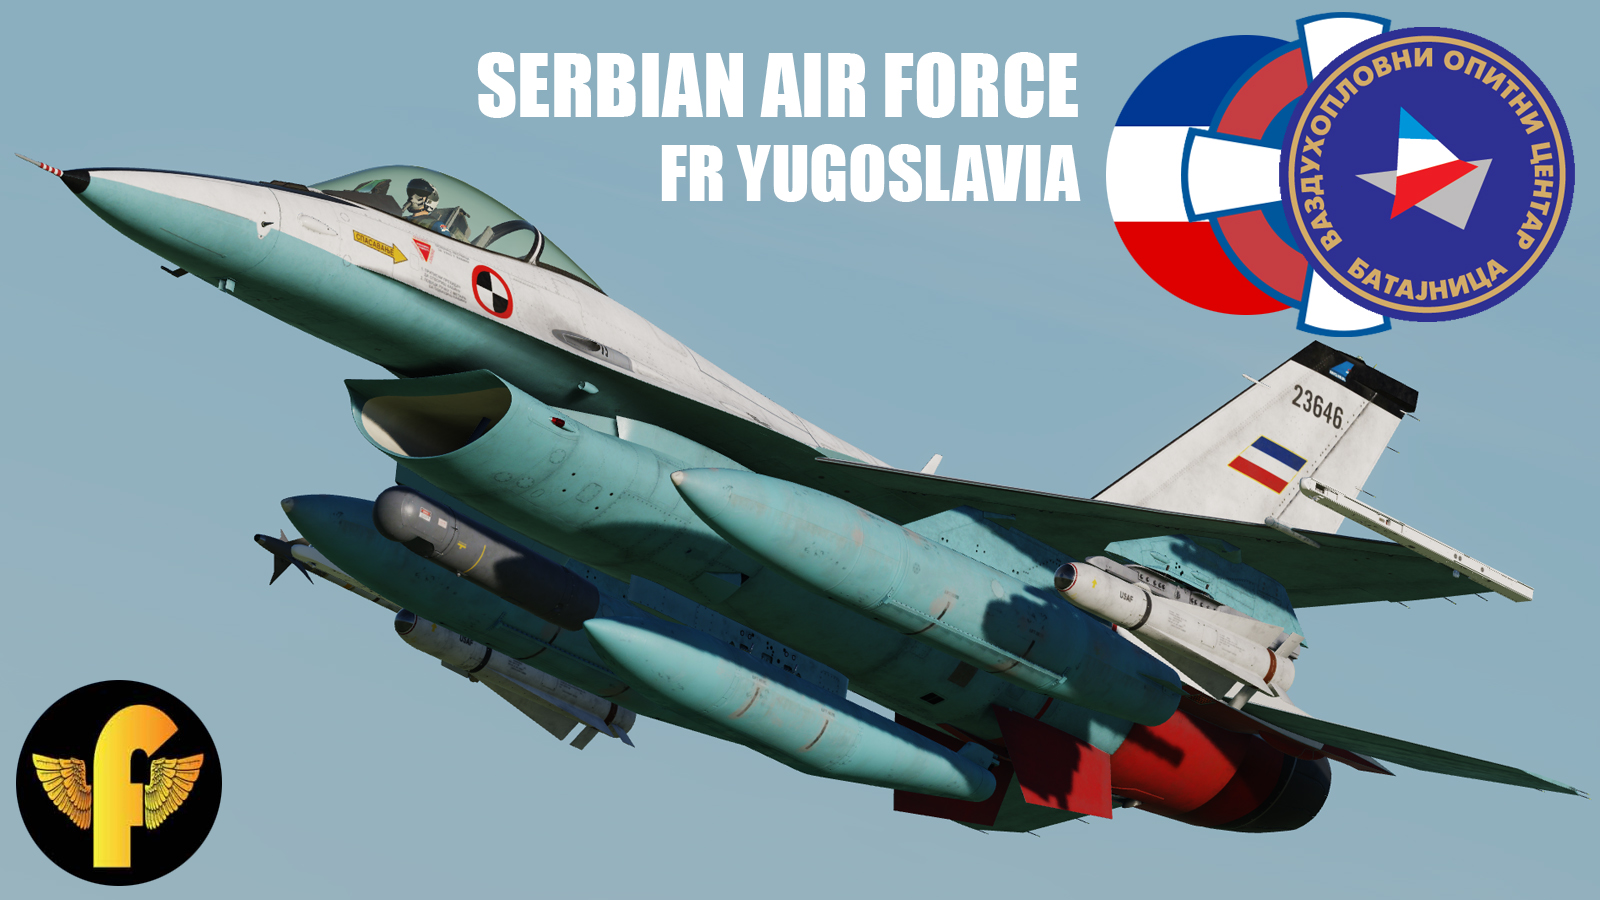 F-16C Viper Serbian Air Force / FR Yugoslavia VOC (Test Center) Fictive Supergaleb G-4M #1